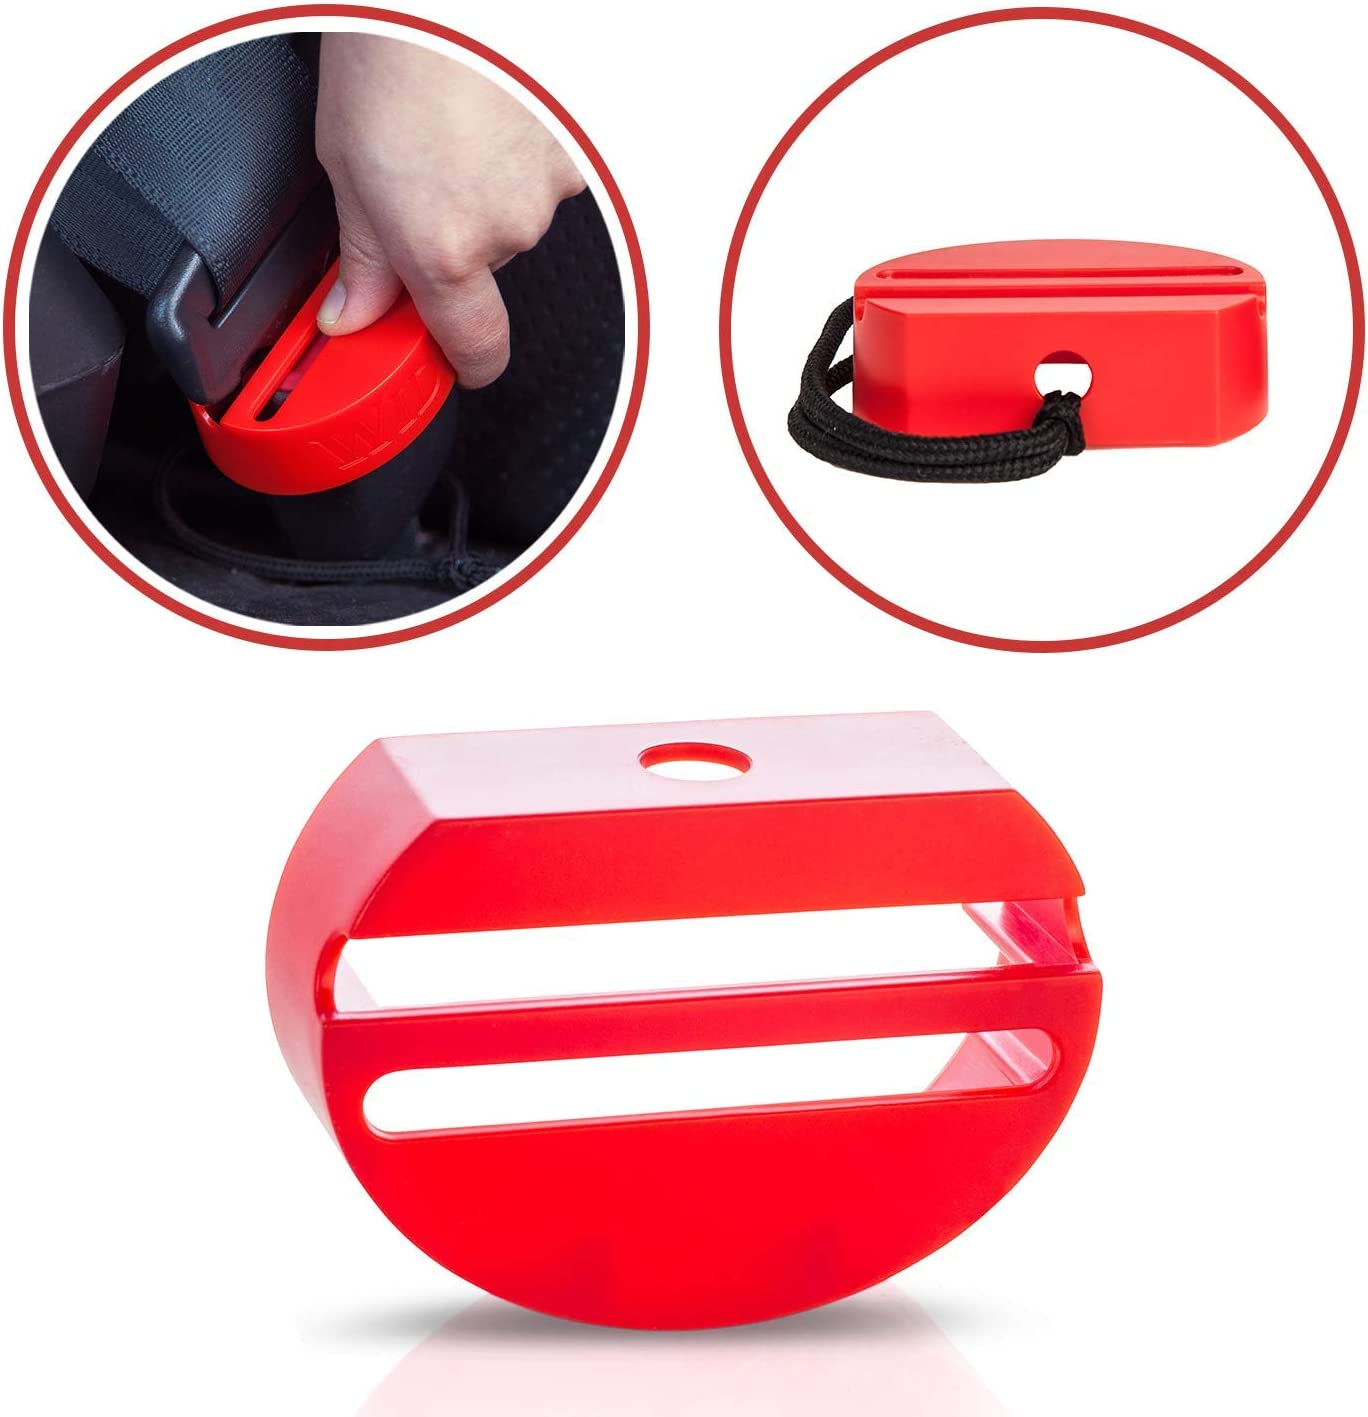 New Premium Safety Seatbelt Secure Buckle Cover By Wididi Prevent Your Chil..